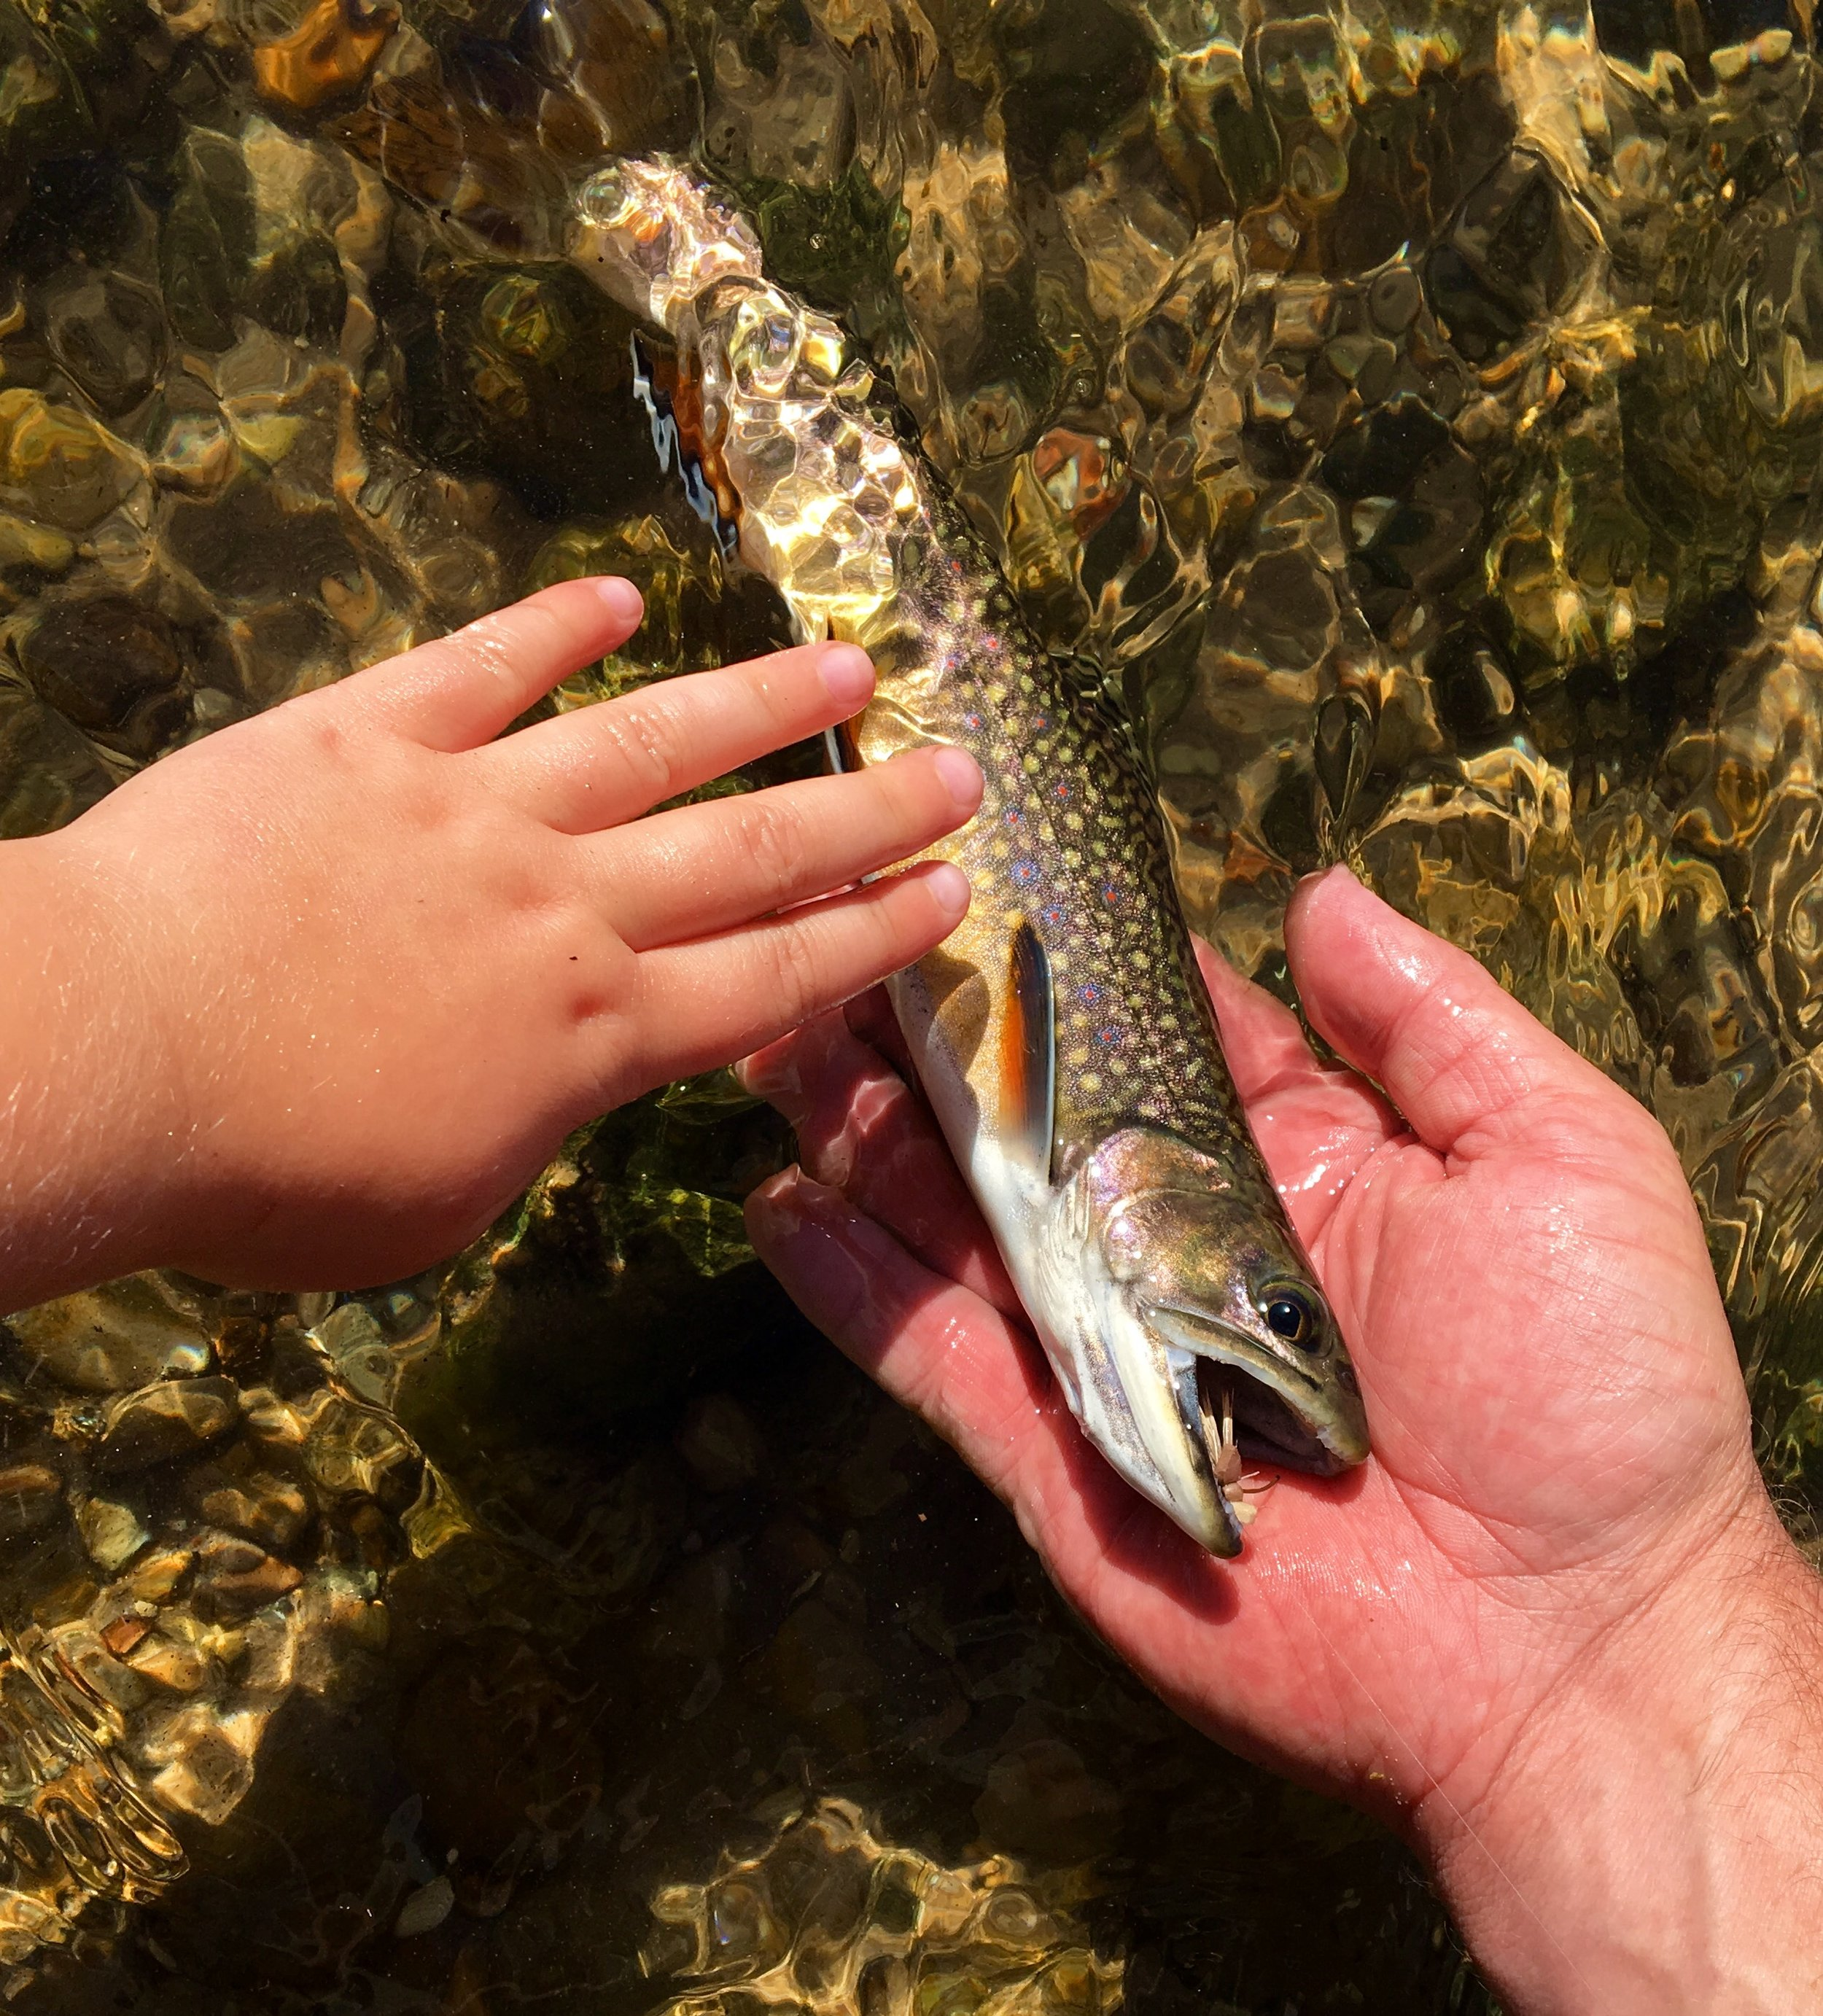 Teaching the next generation about catch and release